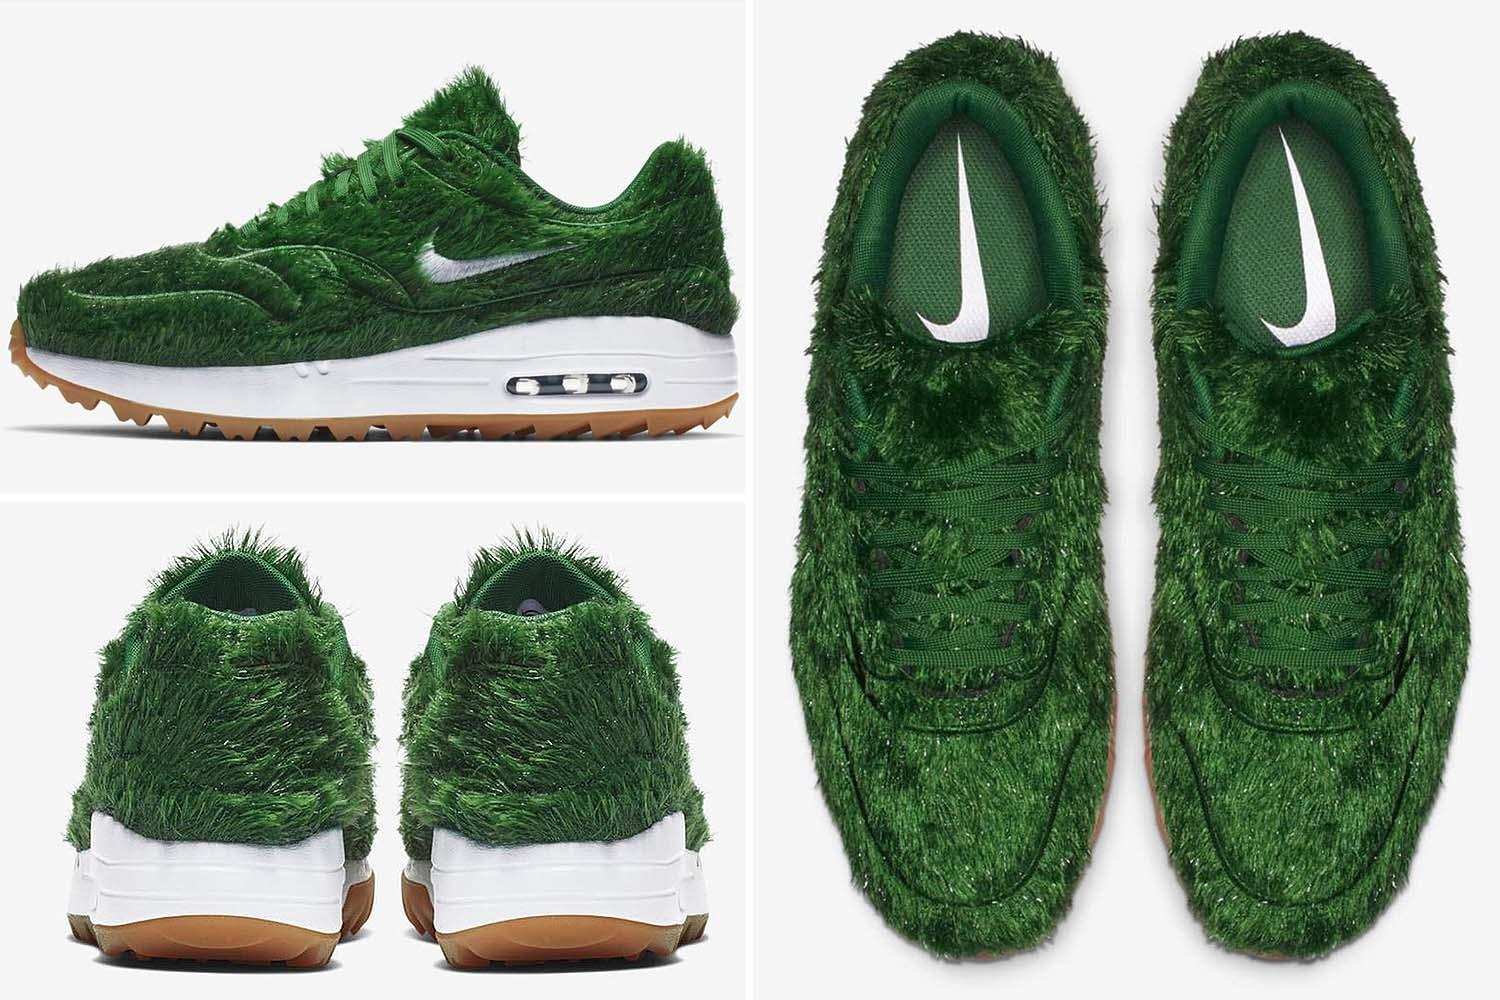 Buy Fake Grass Nike To Launch Air Max Trainers Made Of Fake Grass That Will Cost 110